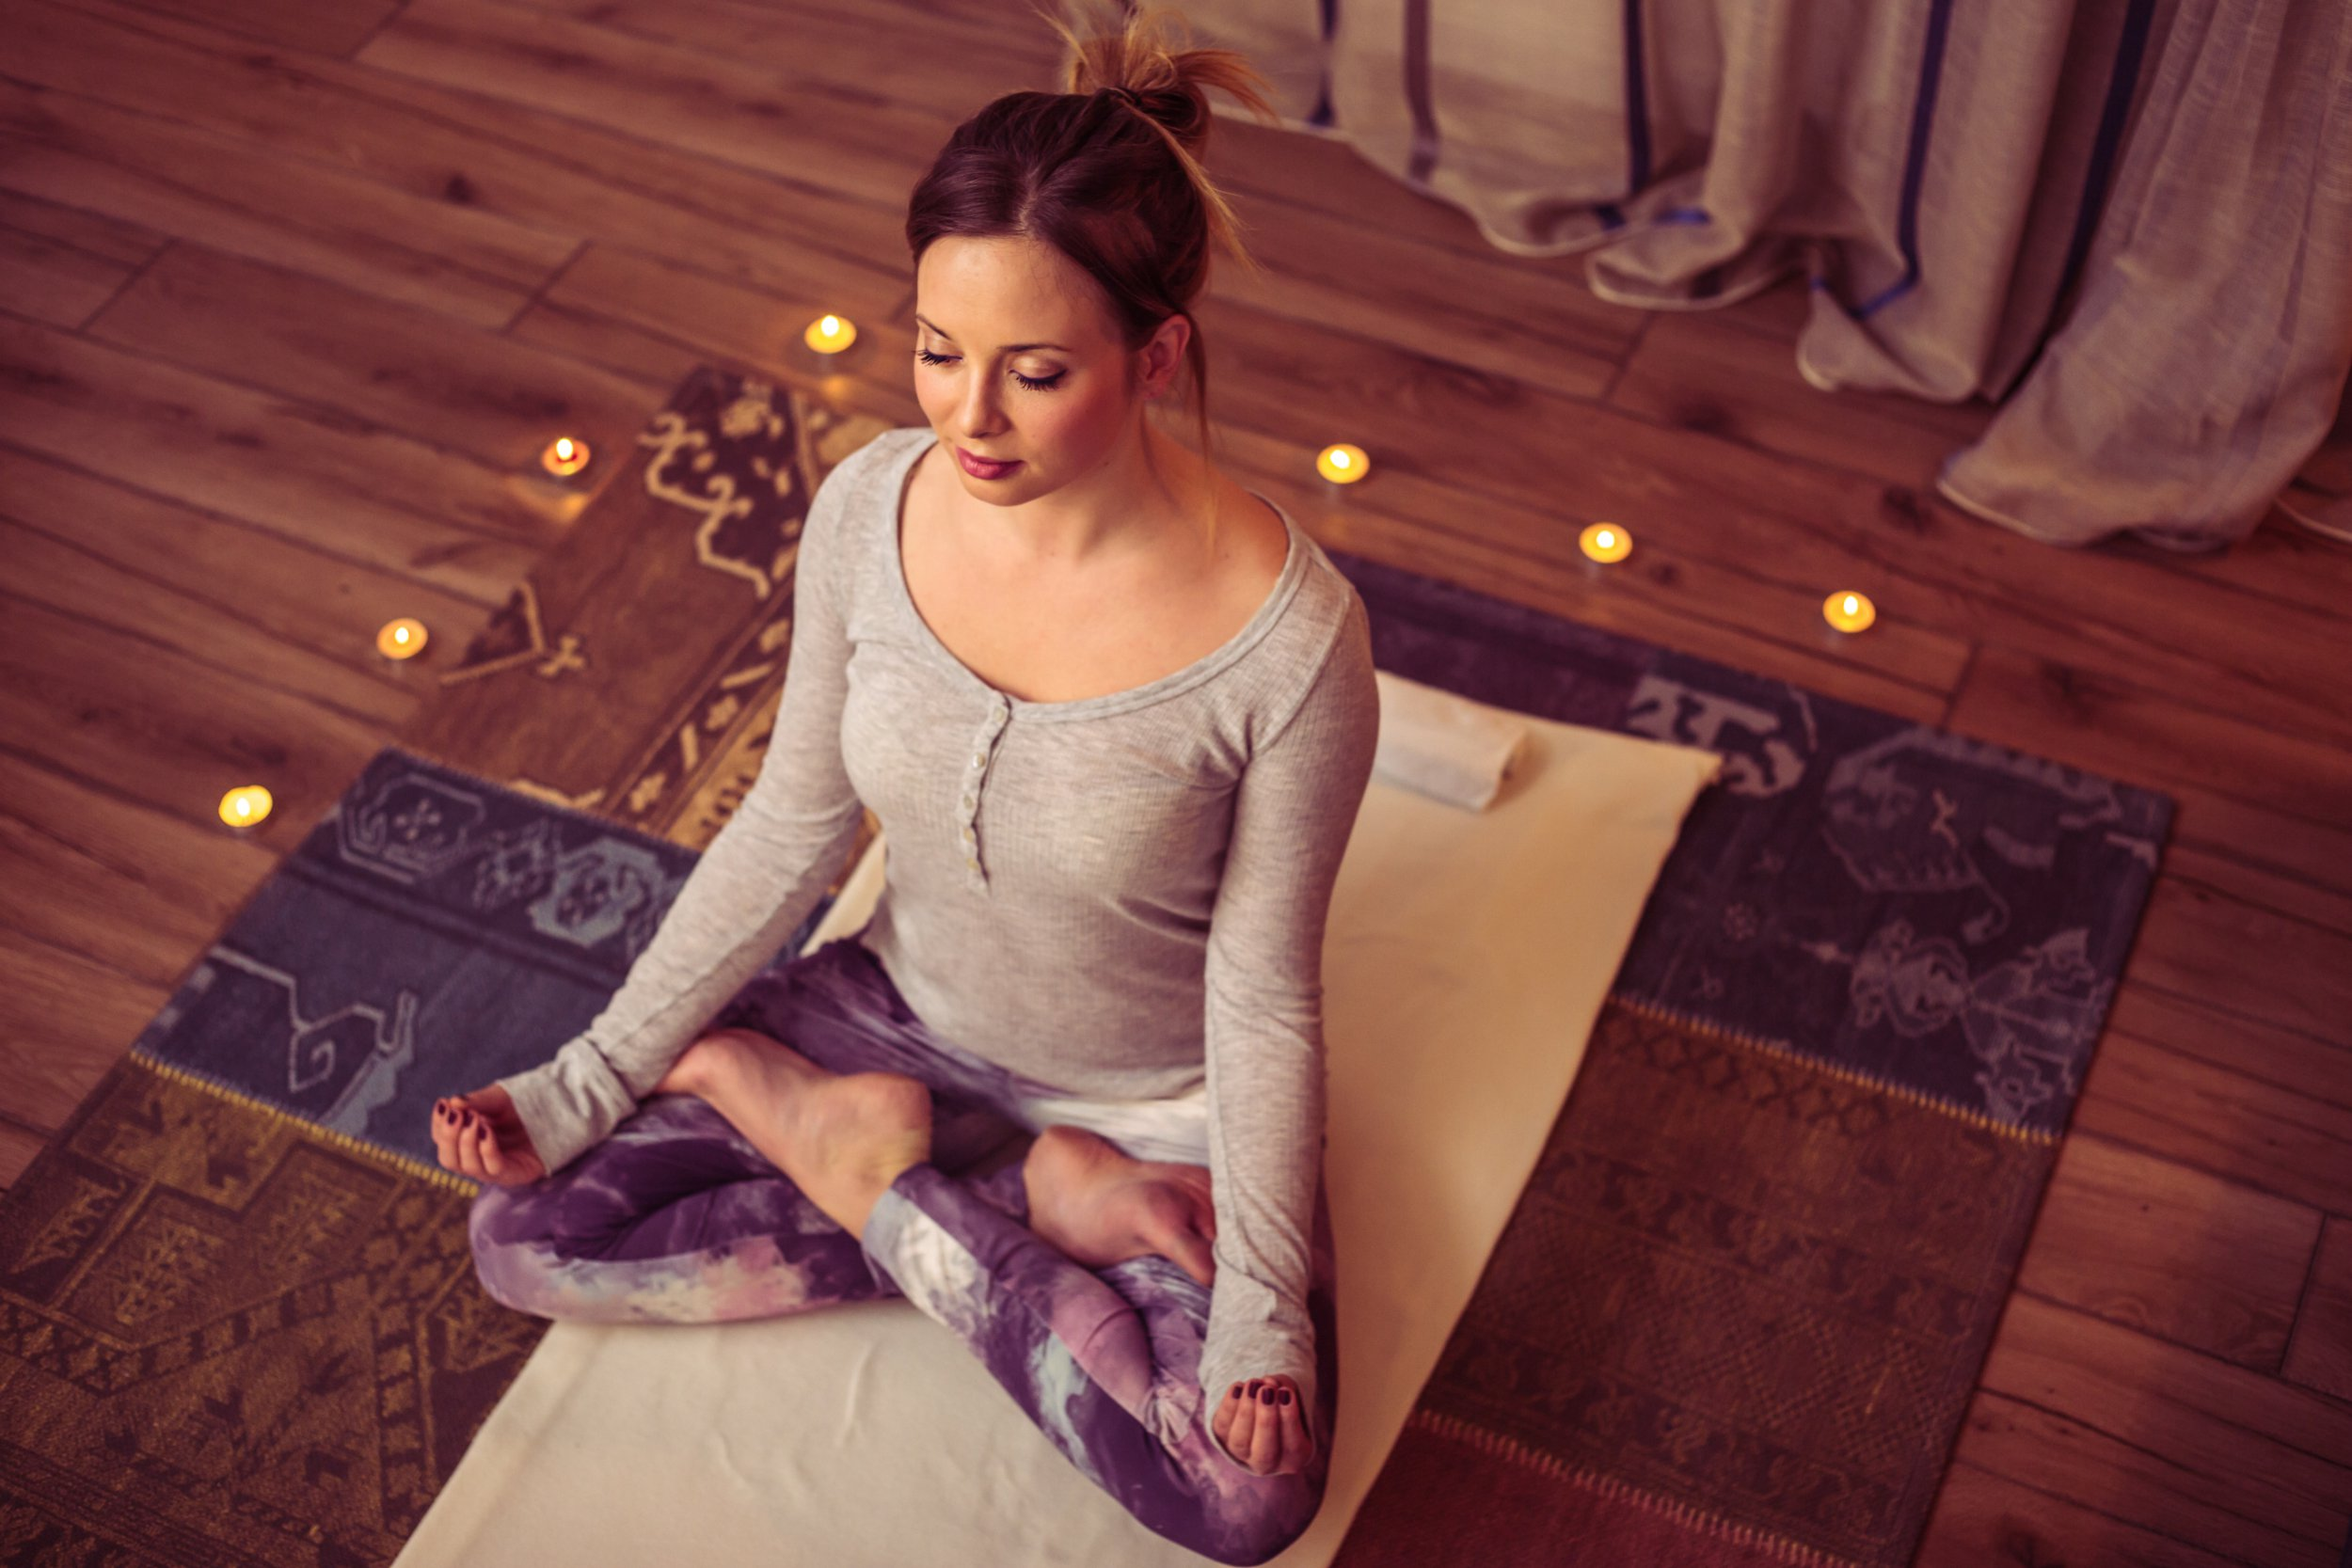 Yoga might be as good for your back pain as physiotherapy